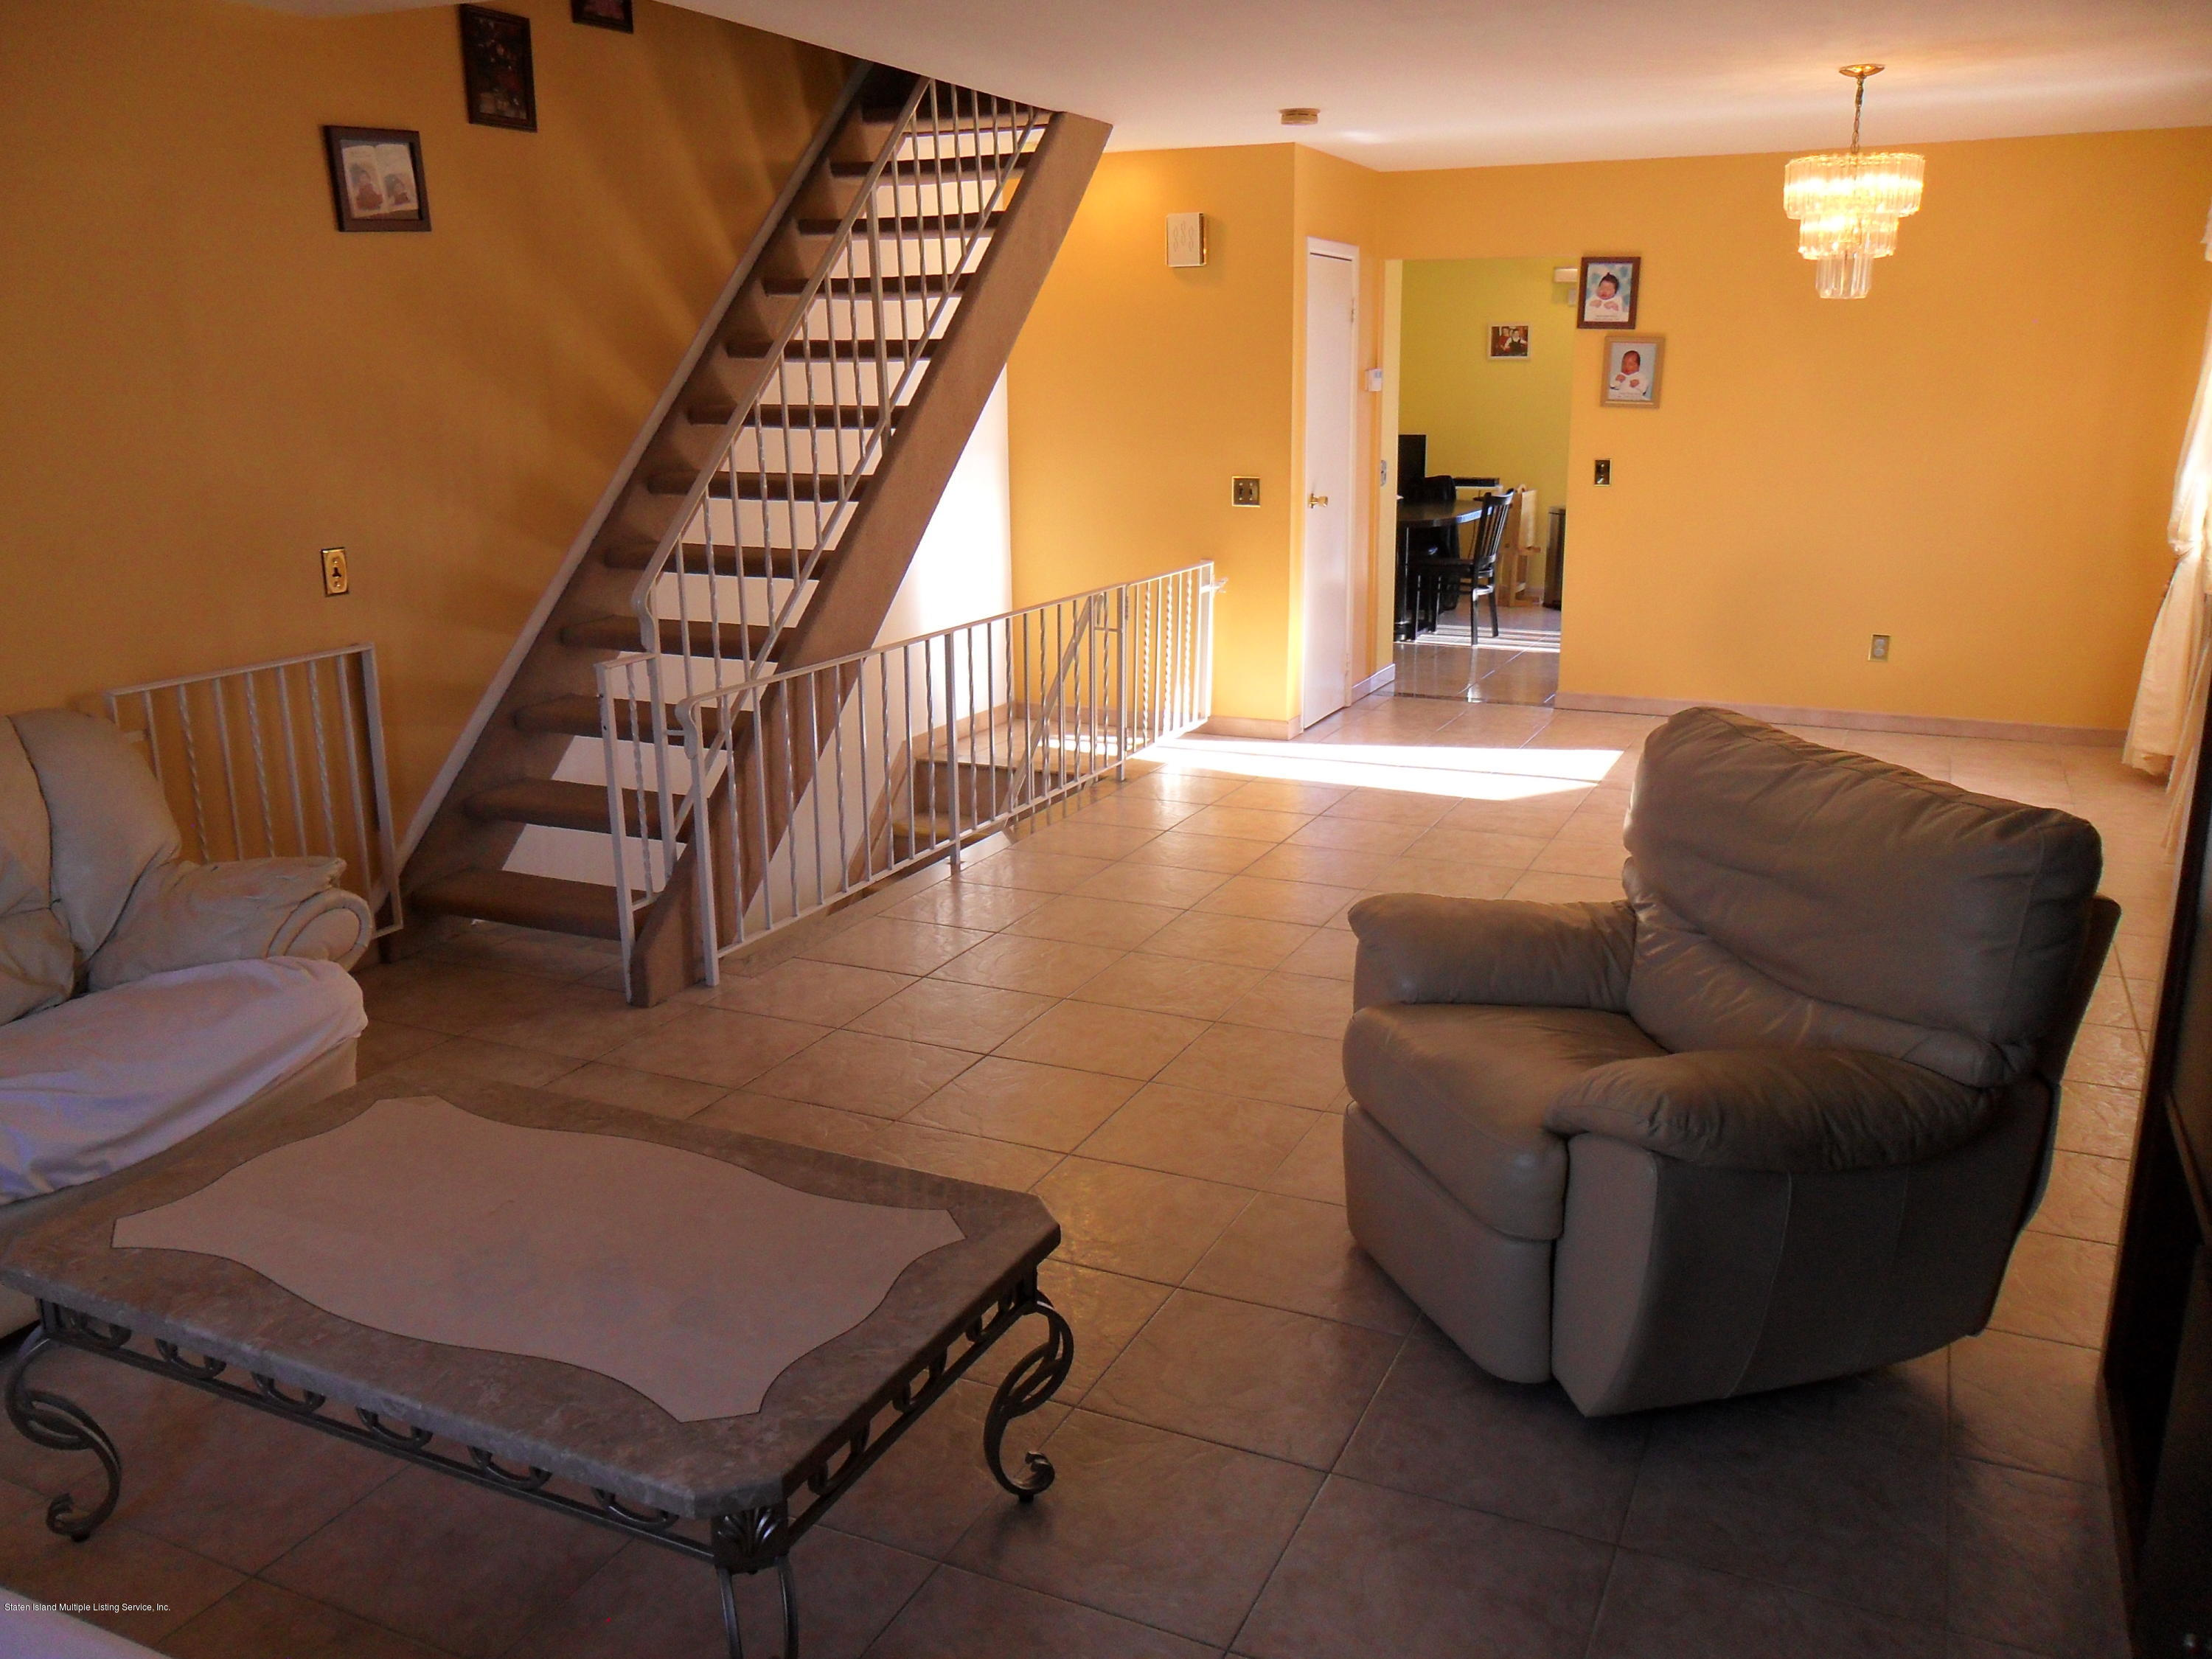 Single Family - Semi-Attached 50 Forest Street  Staten Island, NY 10314, MLS-1127879-10